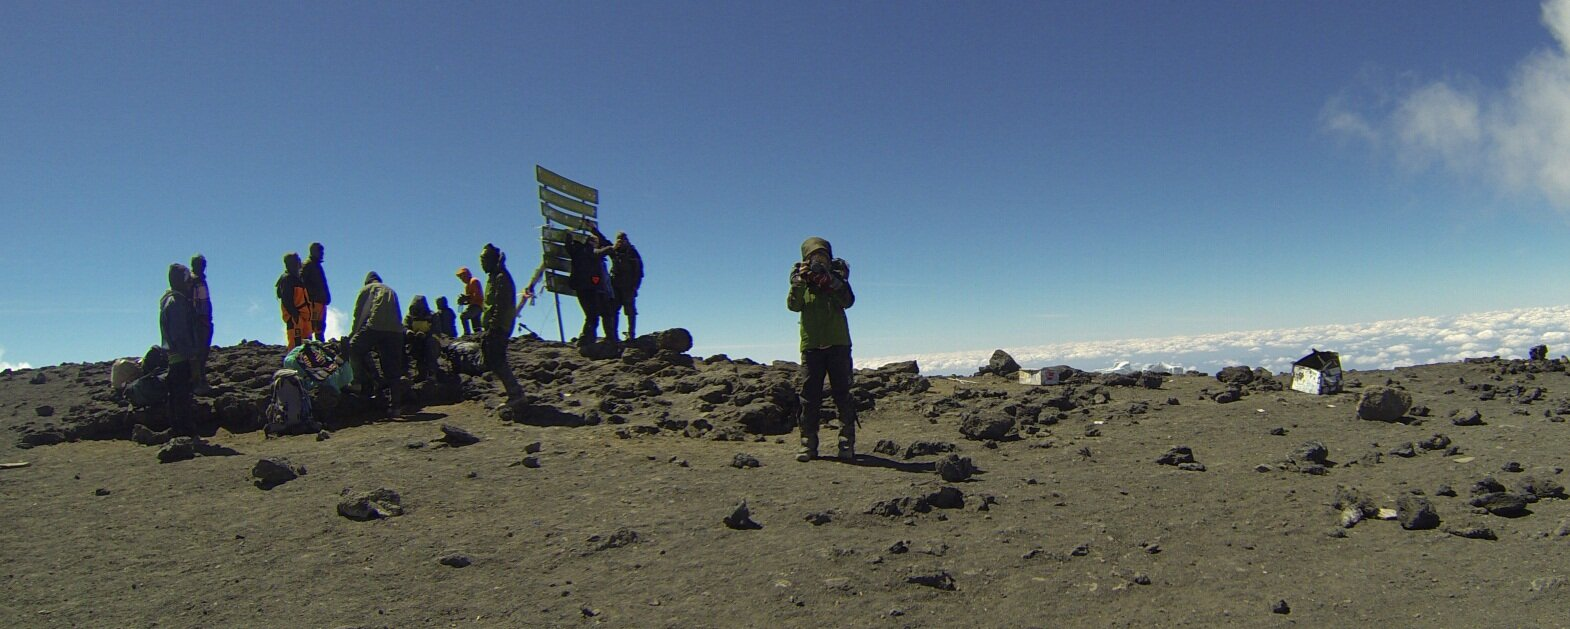 We spent the night in Crater Camp (elev: 18,800) after reaching the summit of Kilimanjaro on July 4th. I no memory of the next twelve hours but here I am taking a photo of Bill (who is taking a photo of me on his go-pro)